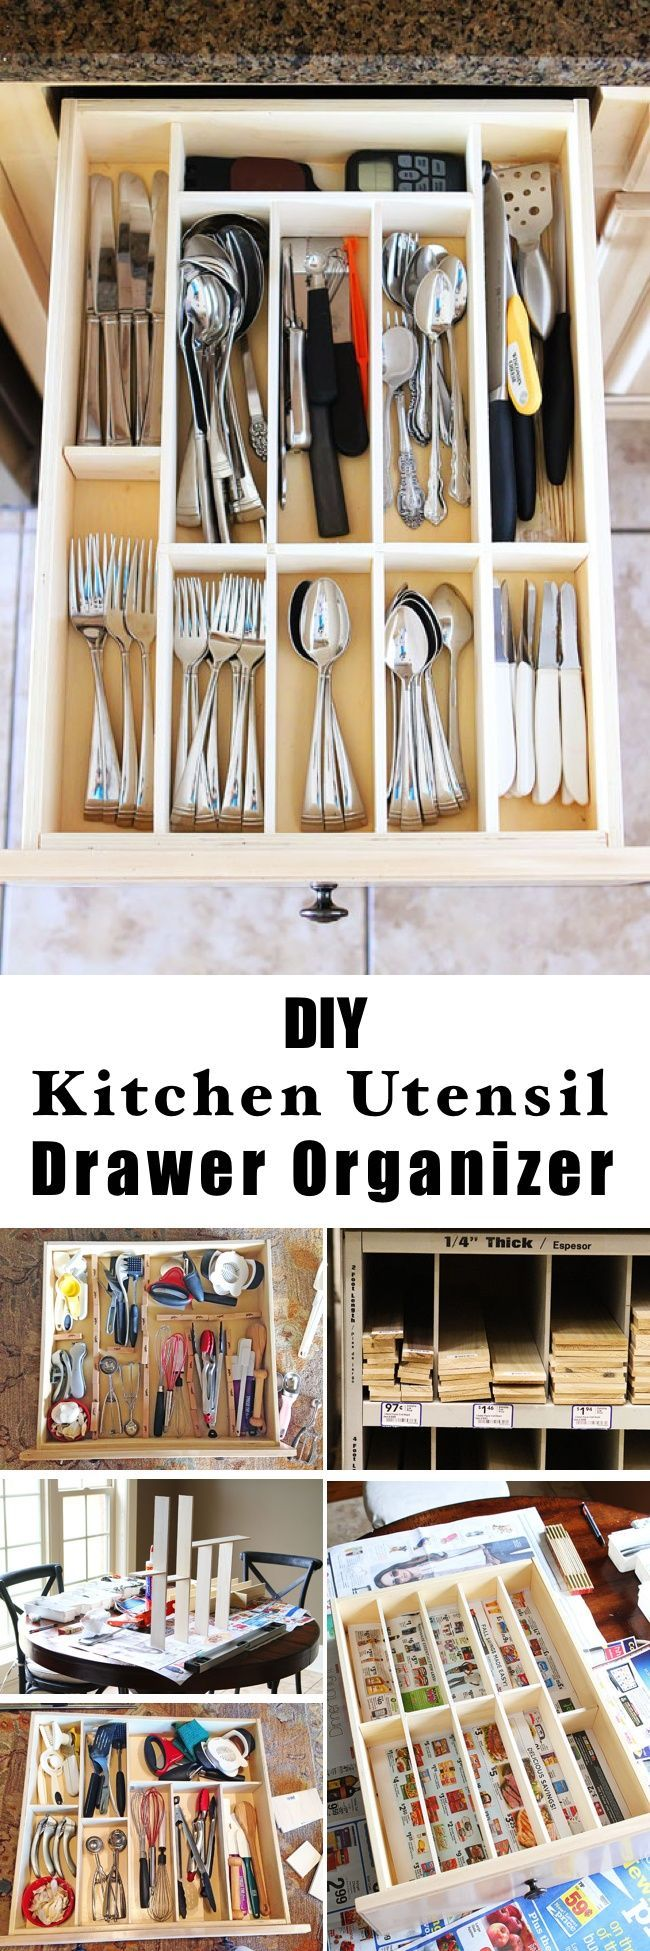 Diy Kitchen Utensil Drawer Organizer Diy Utensils Kitchen Organization Diy Diy Drawers